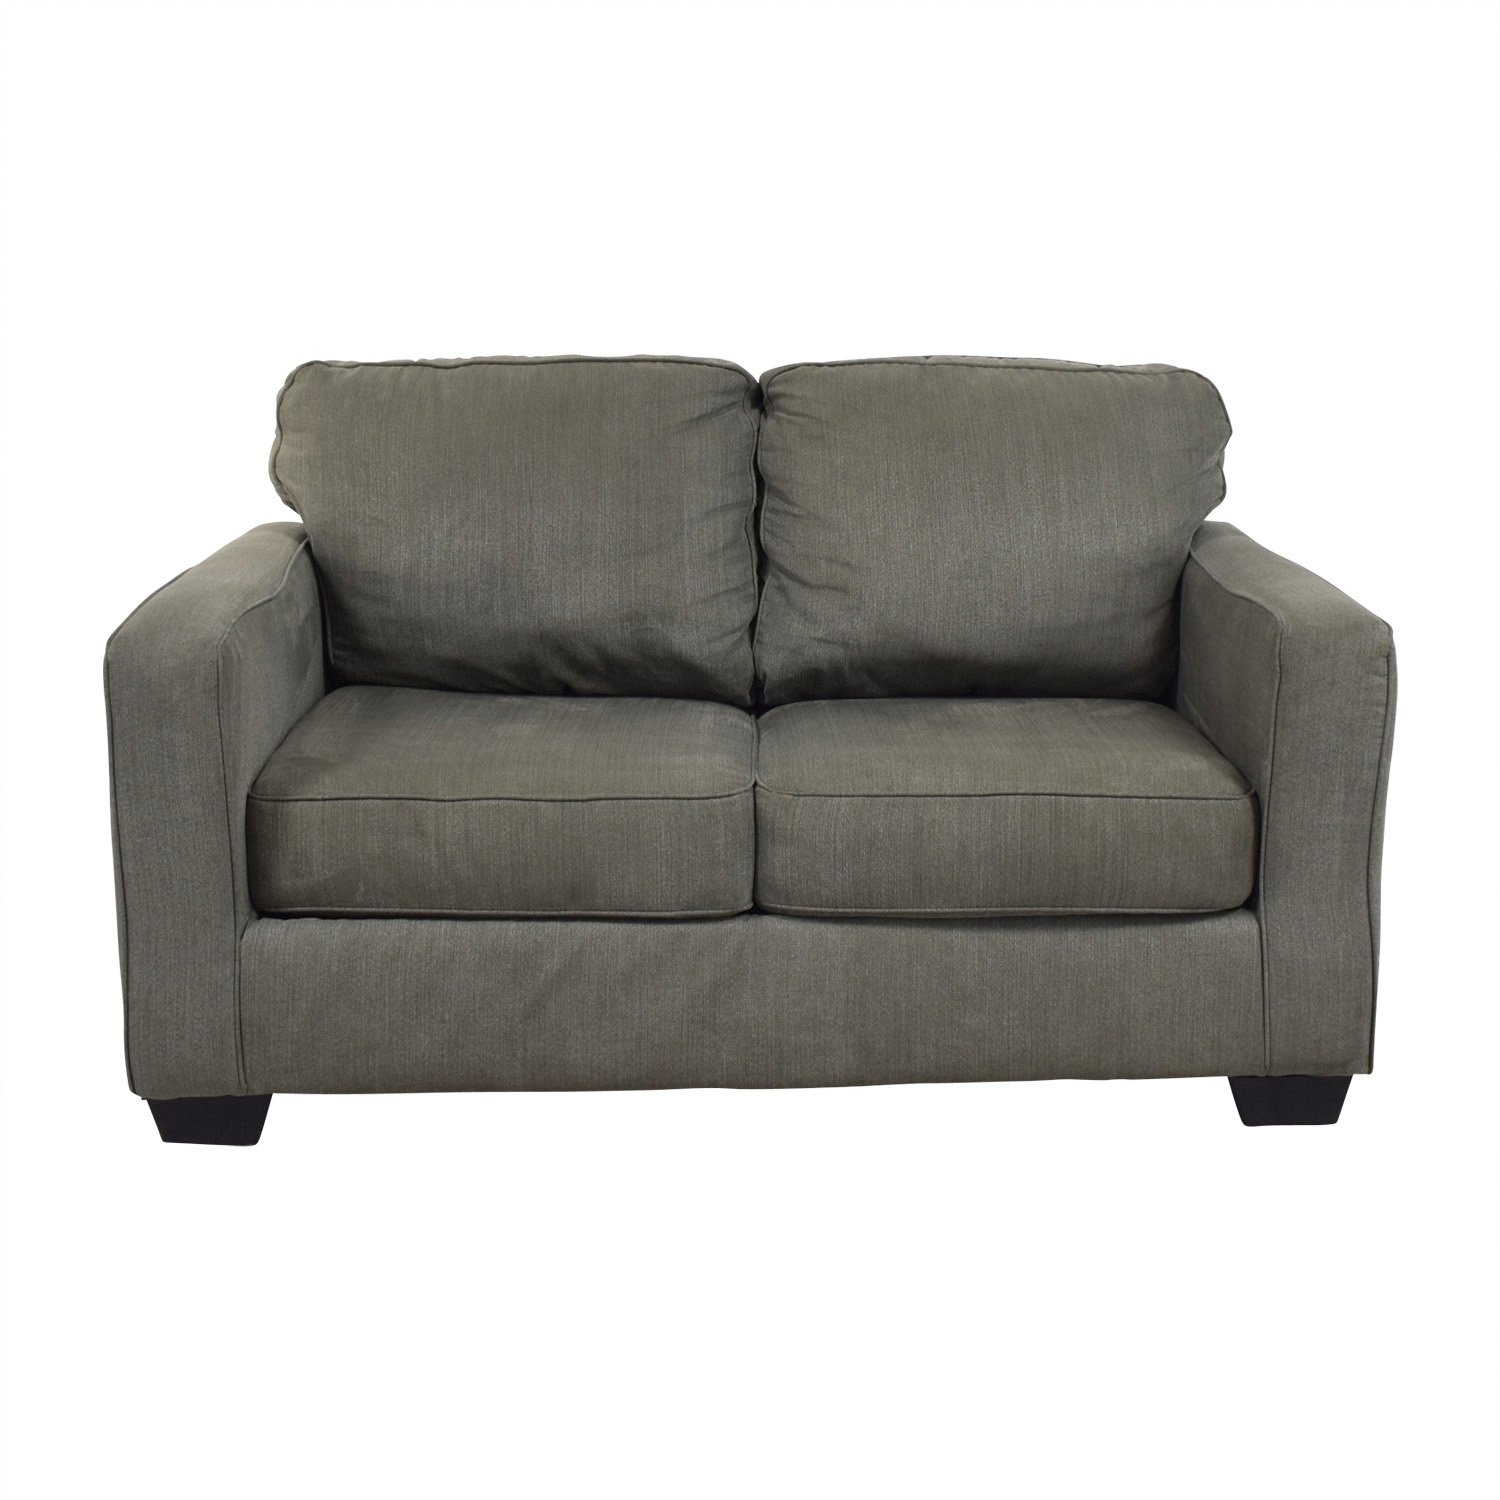 Raymour & Flanigan Raymour & Flanigan Slate Grey Two-Cushion Sofa